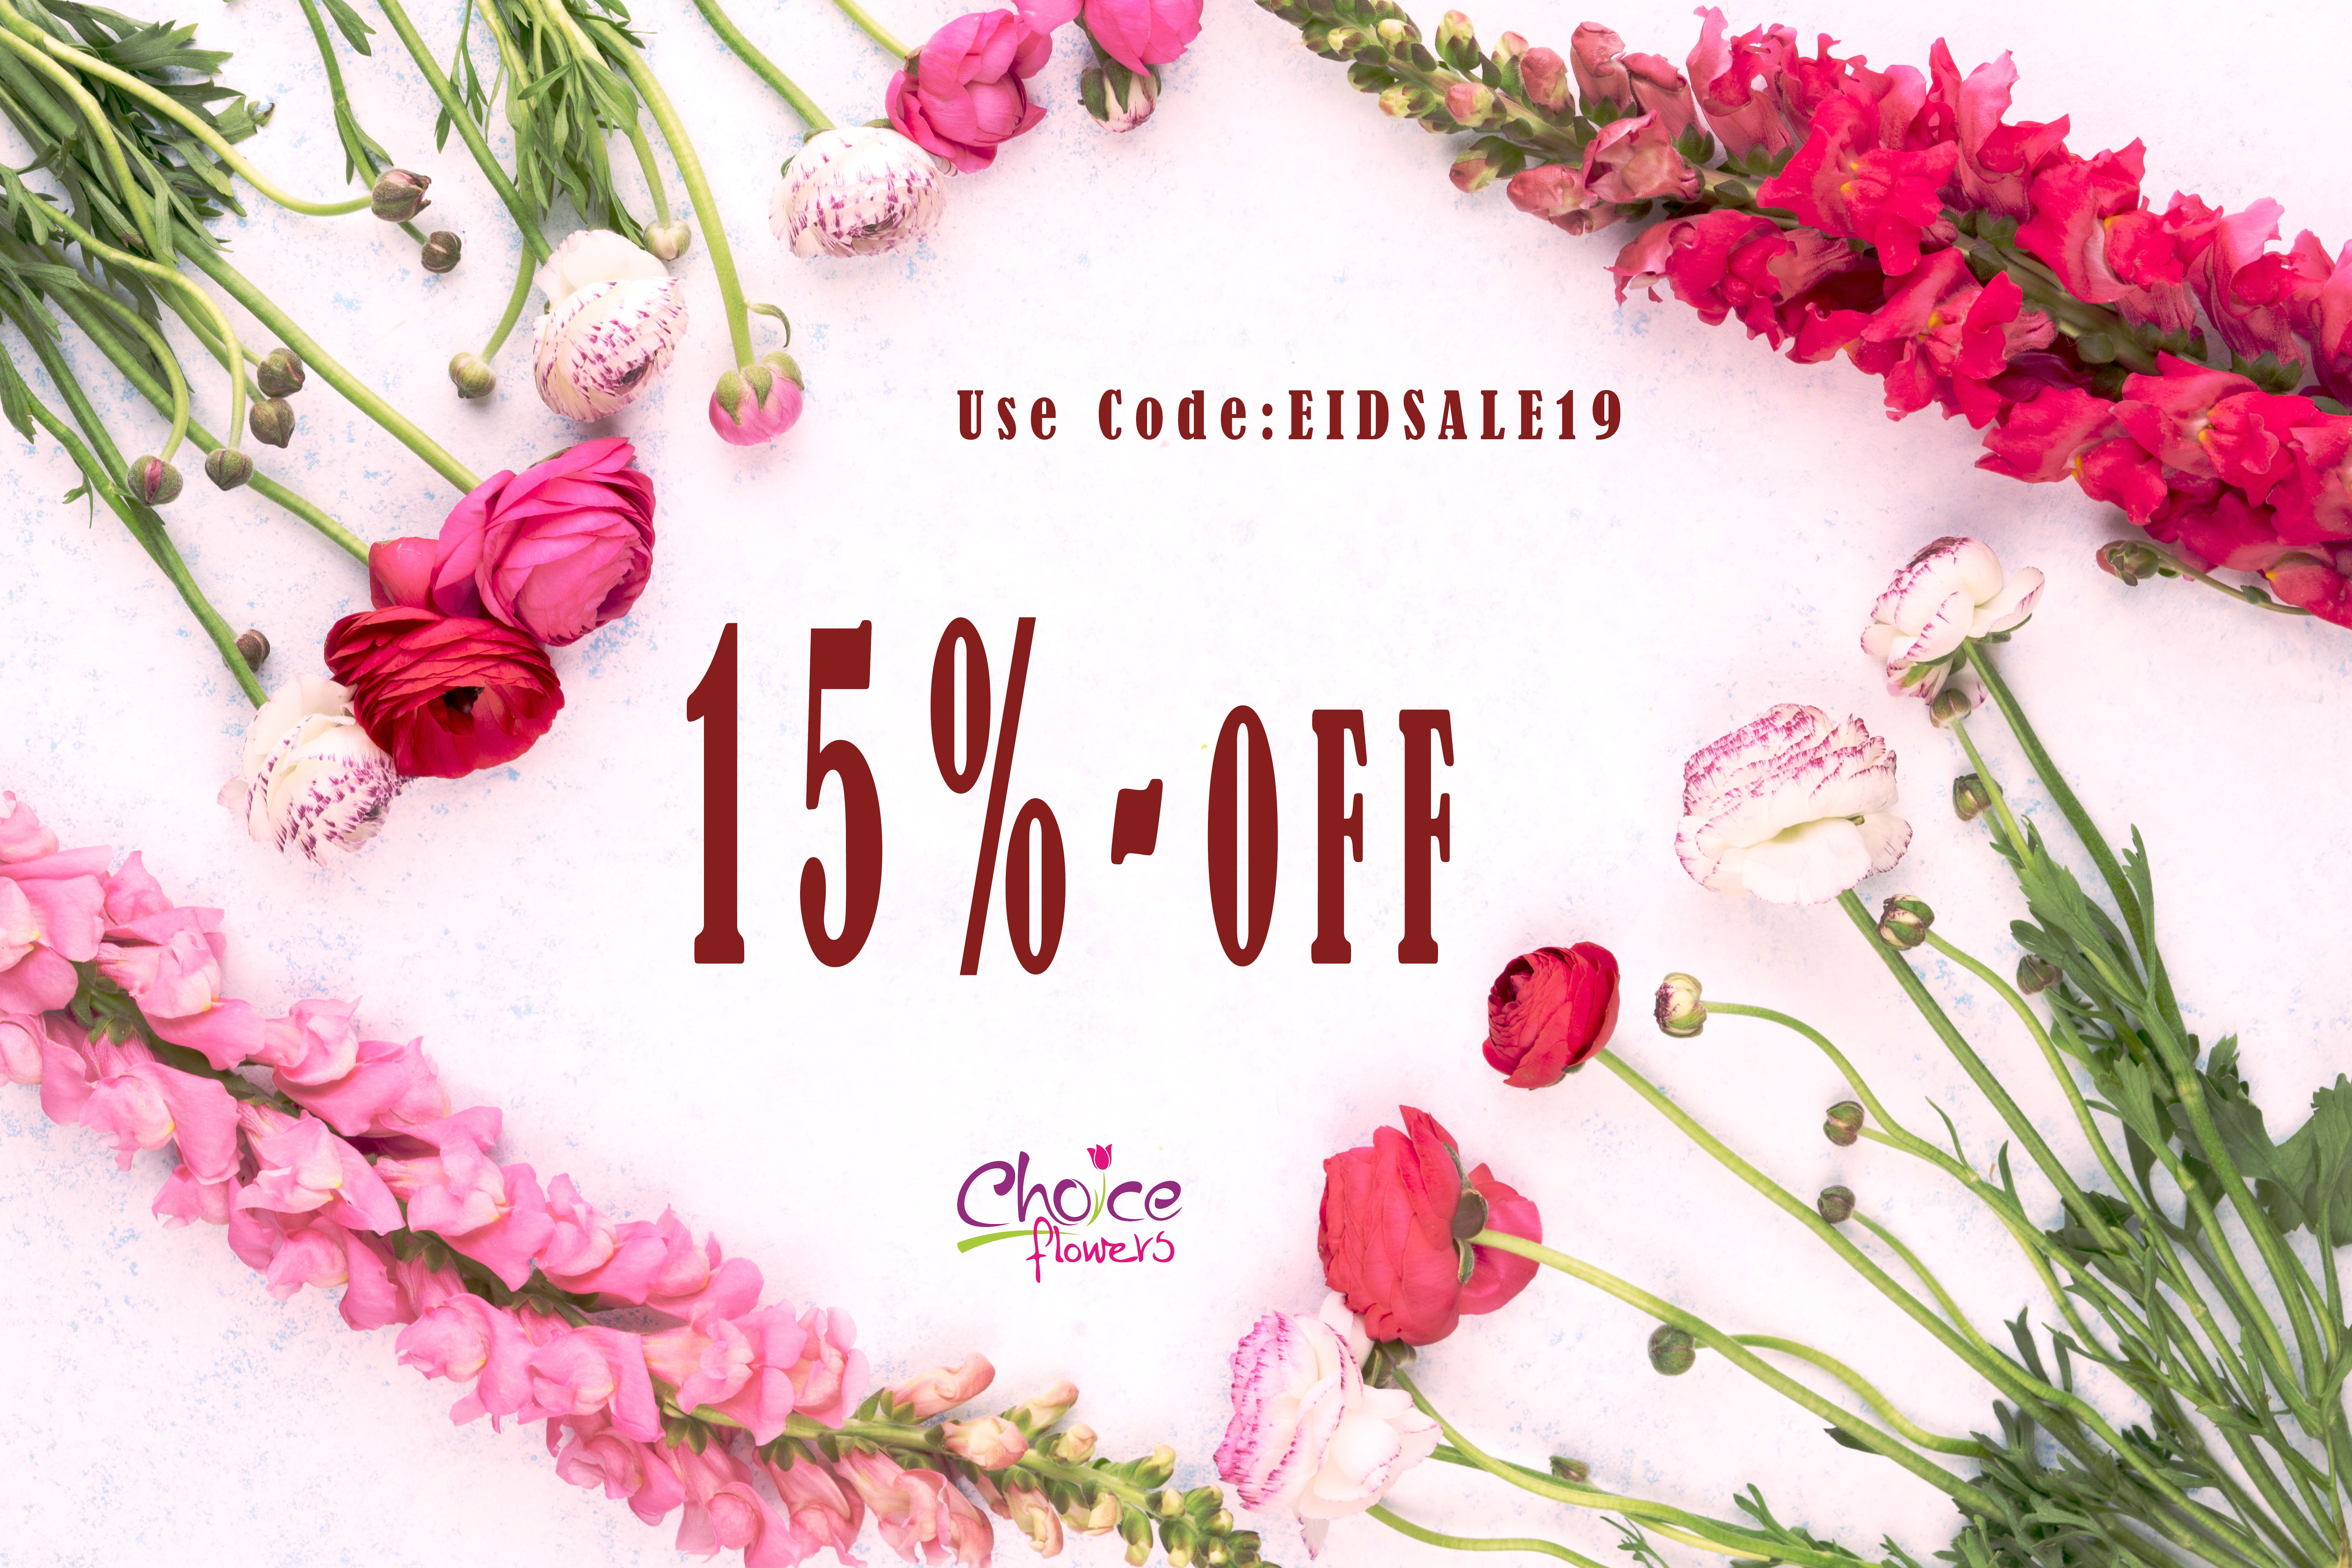 Order Your Flowers And Gifts For EID AL ADHA & Get 15